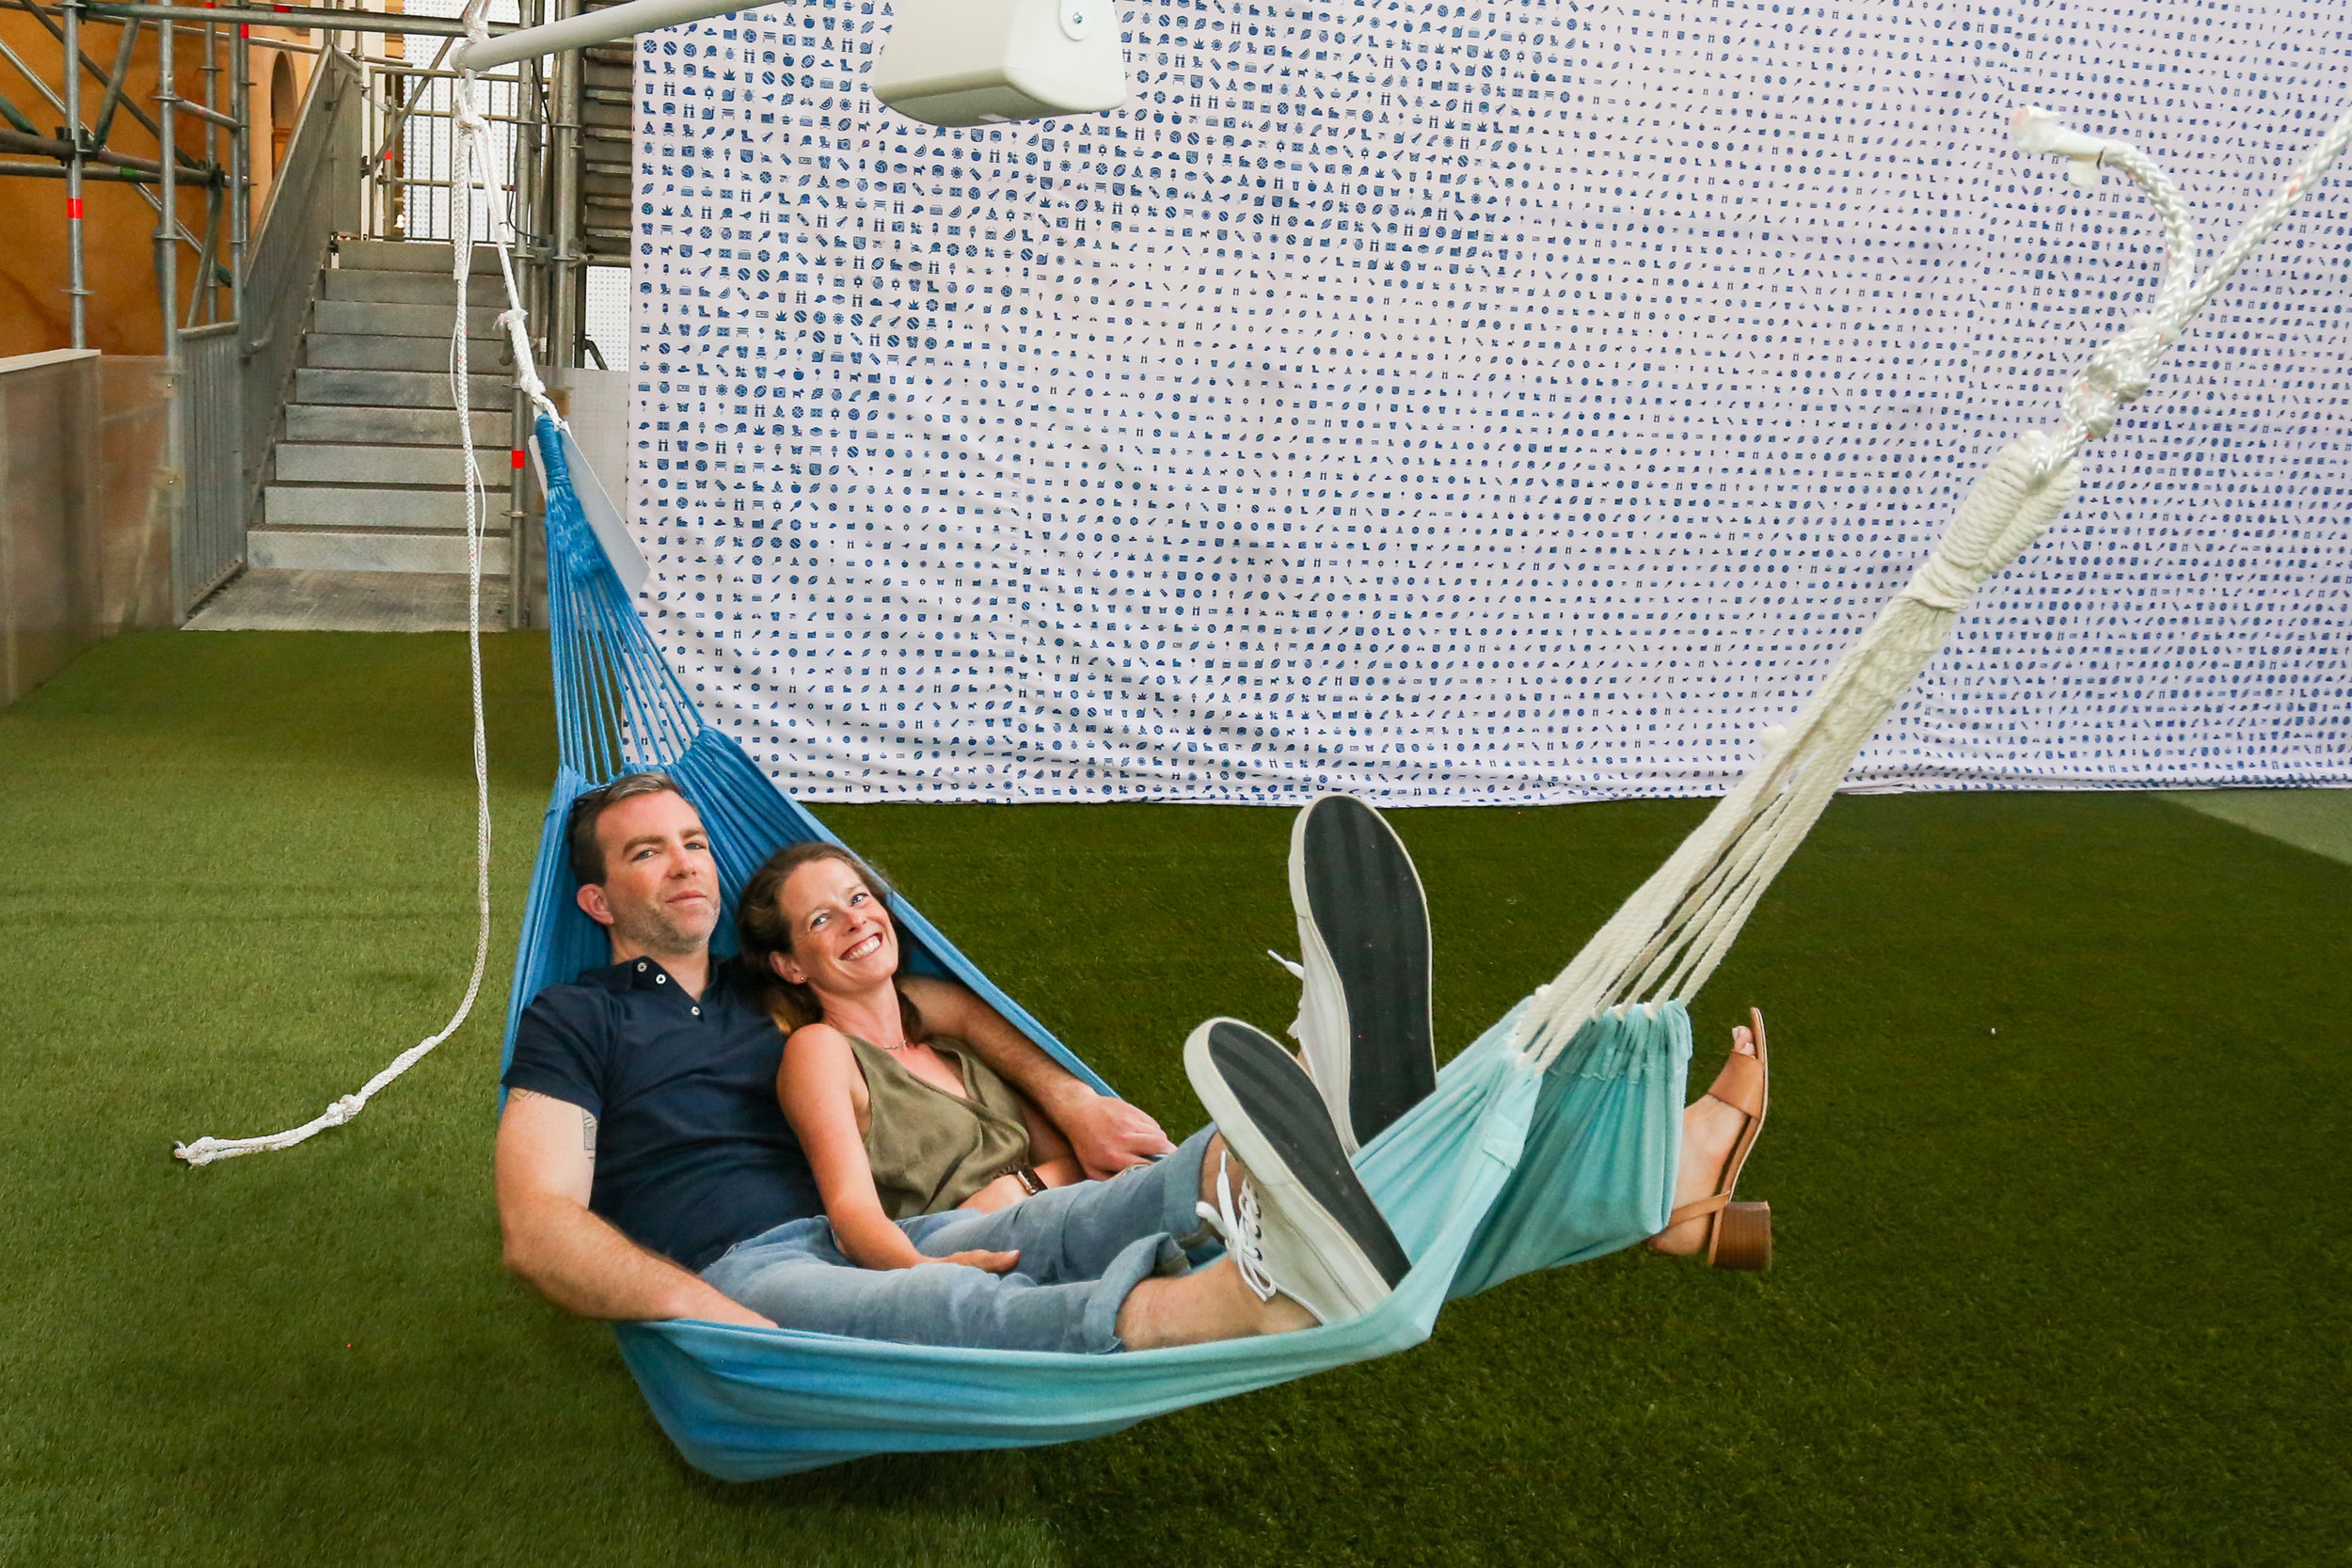 Visitors can listen to the summer memories of well-known Americans while reclining in hammocks.